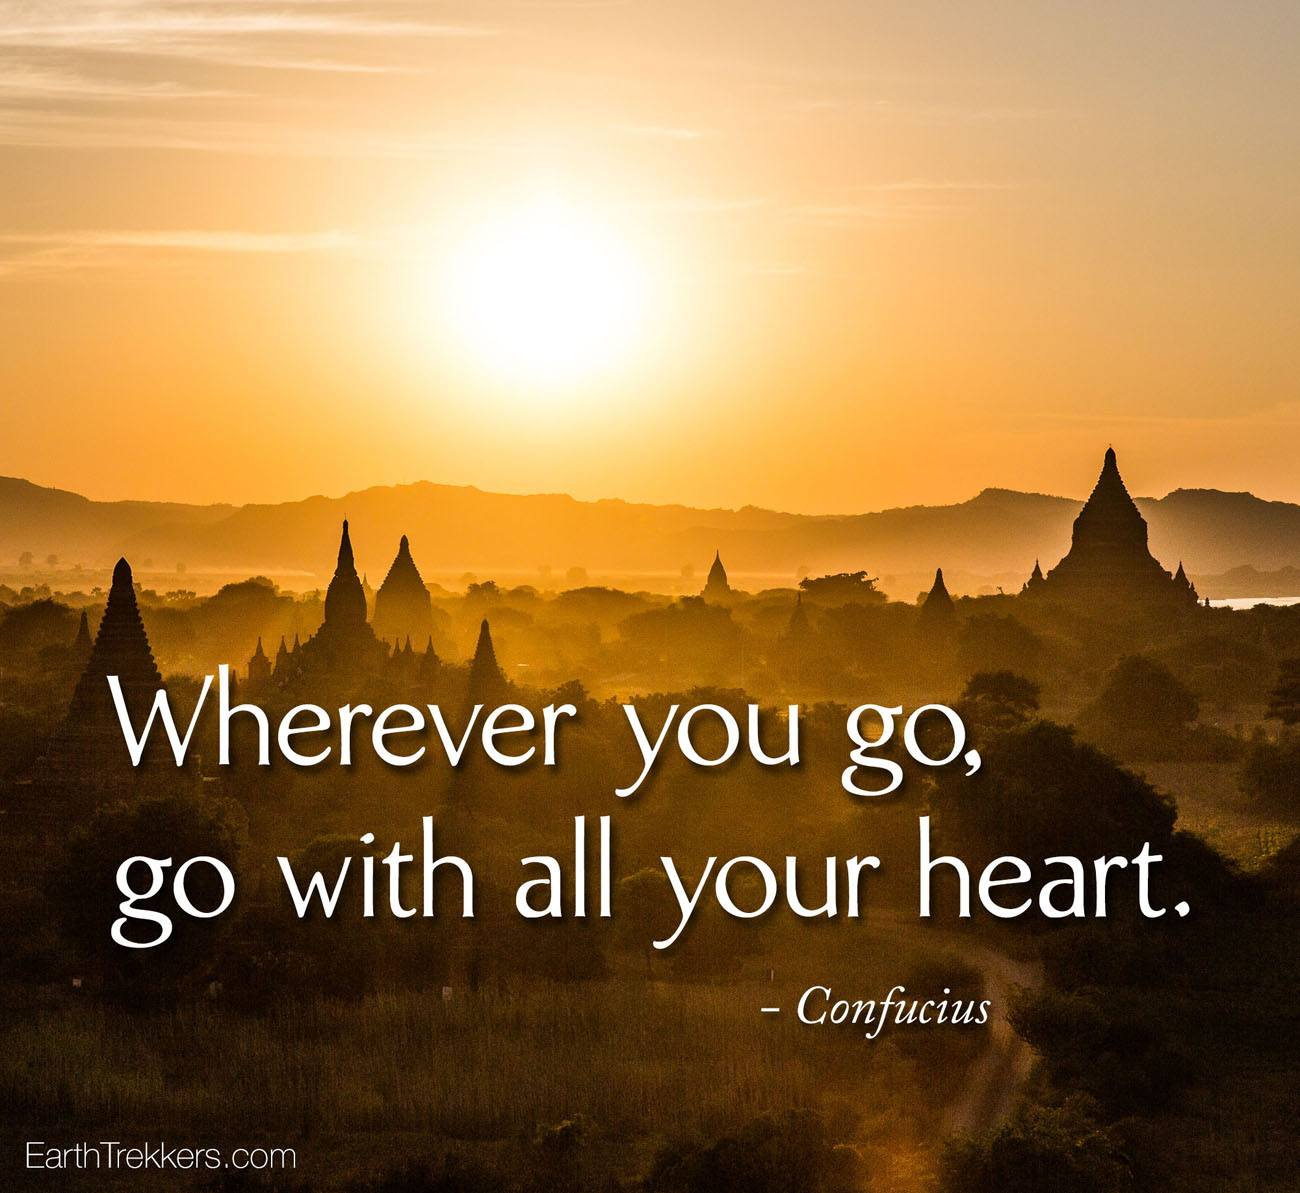 Go with all your heart confucius quote